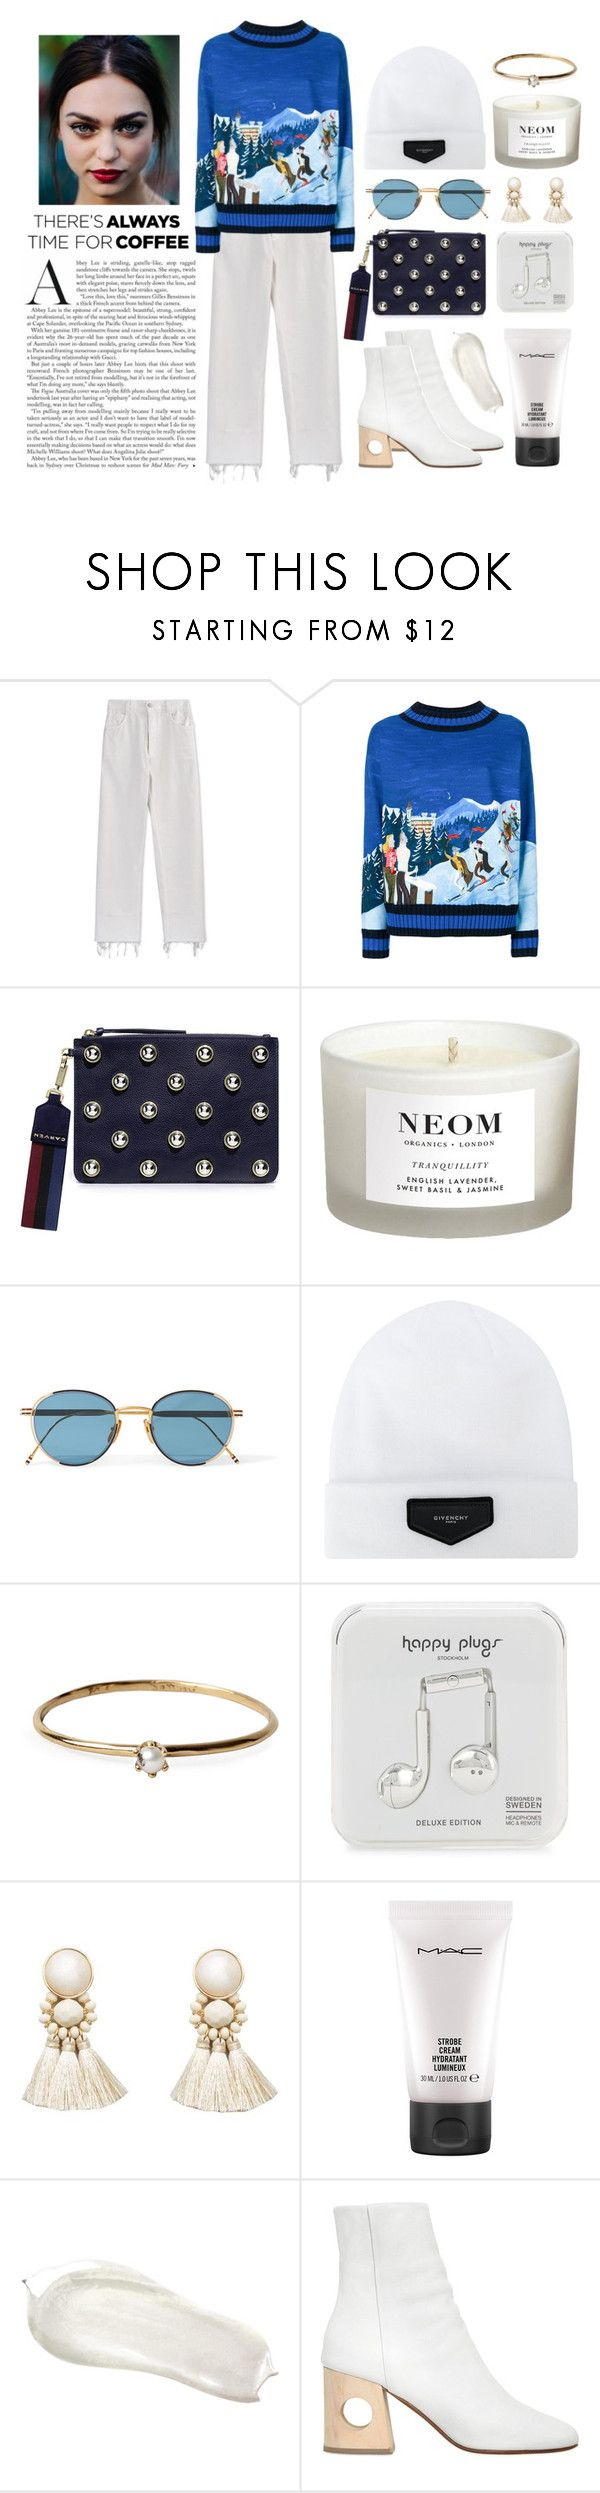 """""""Embroidered Sweater"""" by mugeozkan ❤ liked on Polyvore featuring Moncler, Carven, NEOM Organics, Thom Browne, Givenchy, Satomi Kawakita, Happy Plugs, Violeta by Mango, MAC Cosmetics and Ports 1961"""